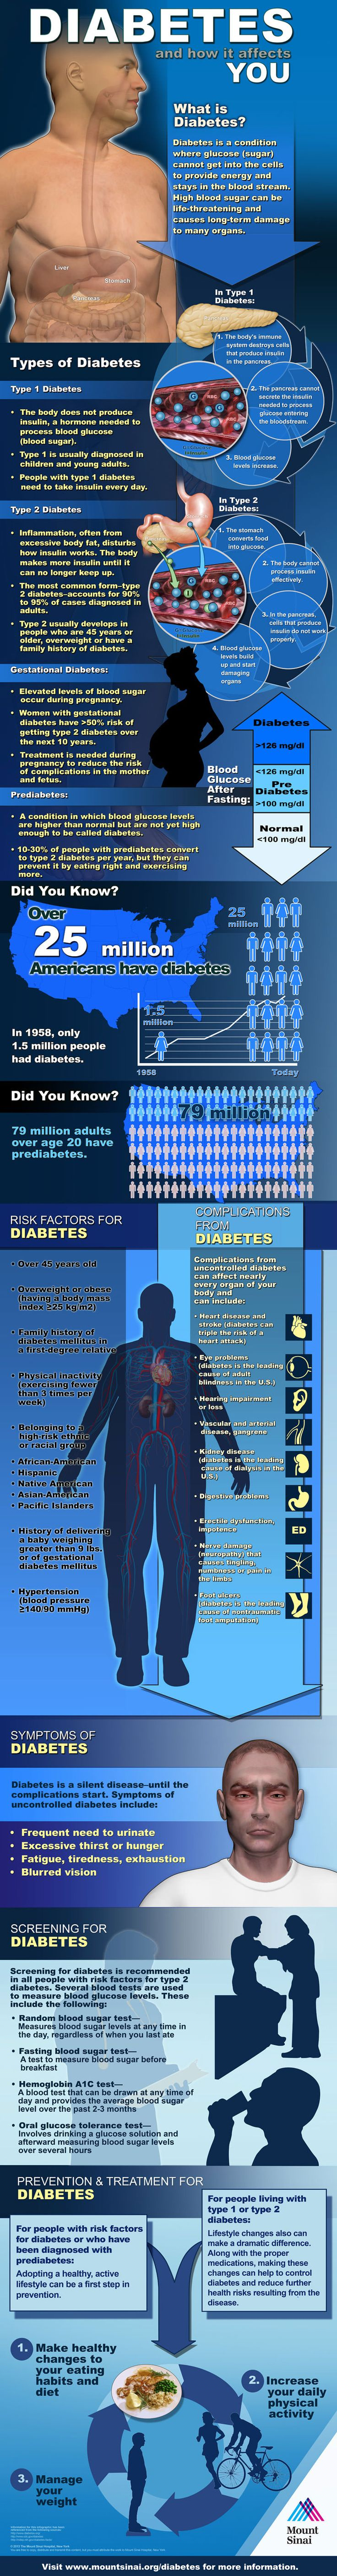 Diabetes And How It Affects You